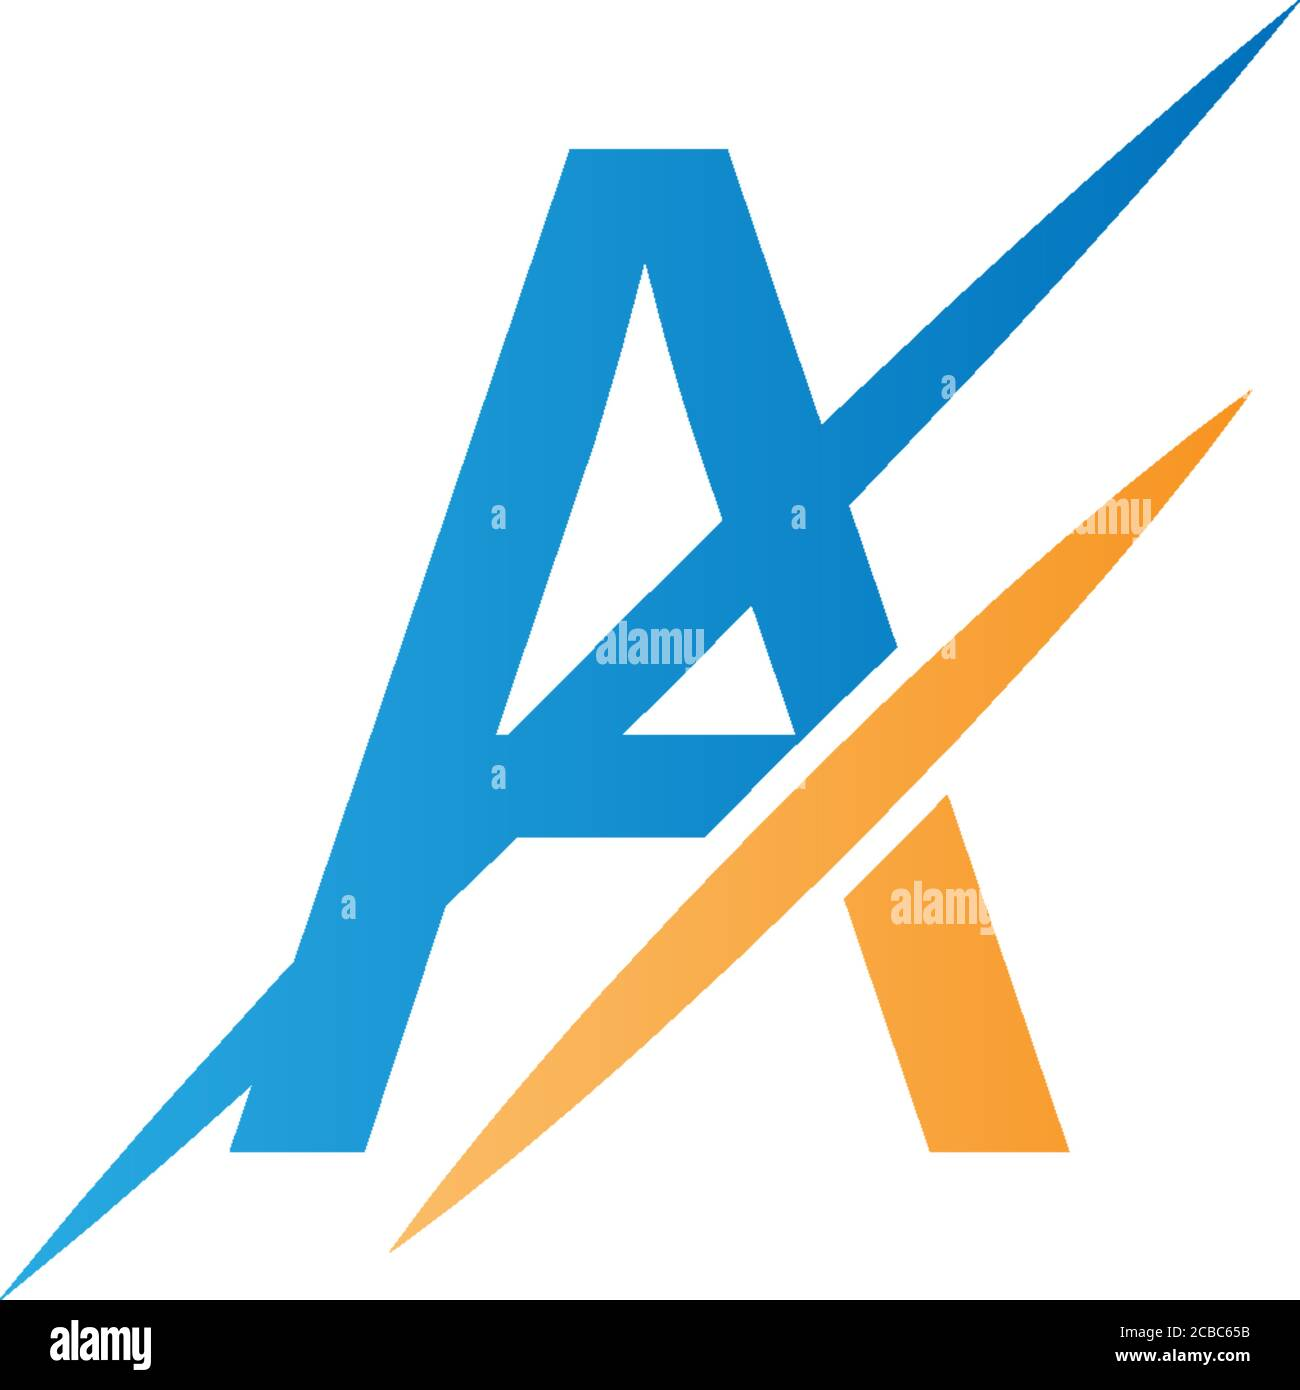 a letter slash logo concept letter a icon slash stock vector image art alamy https www alamy com a letter slash logo concept letter a icon slash image368447223 html